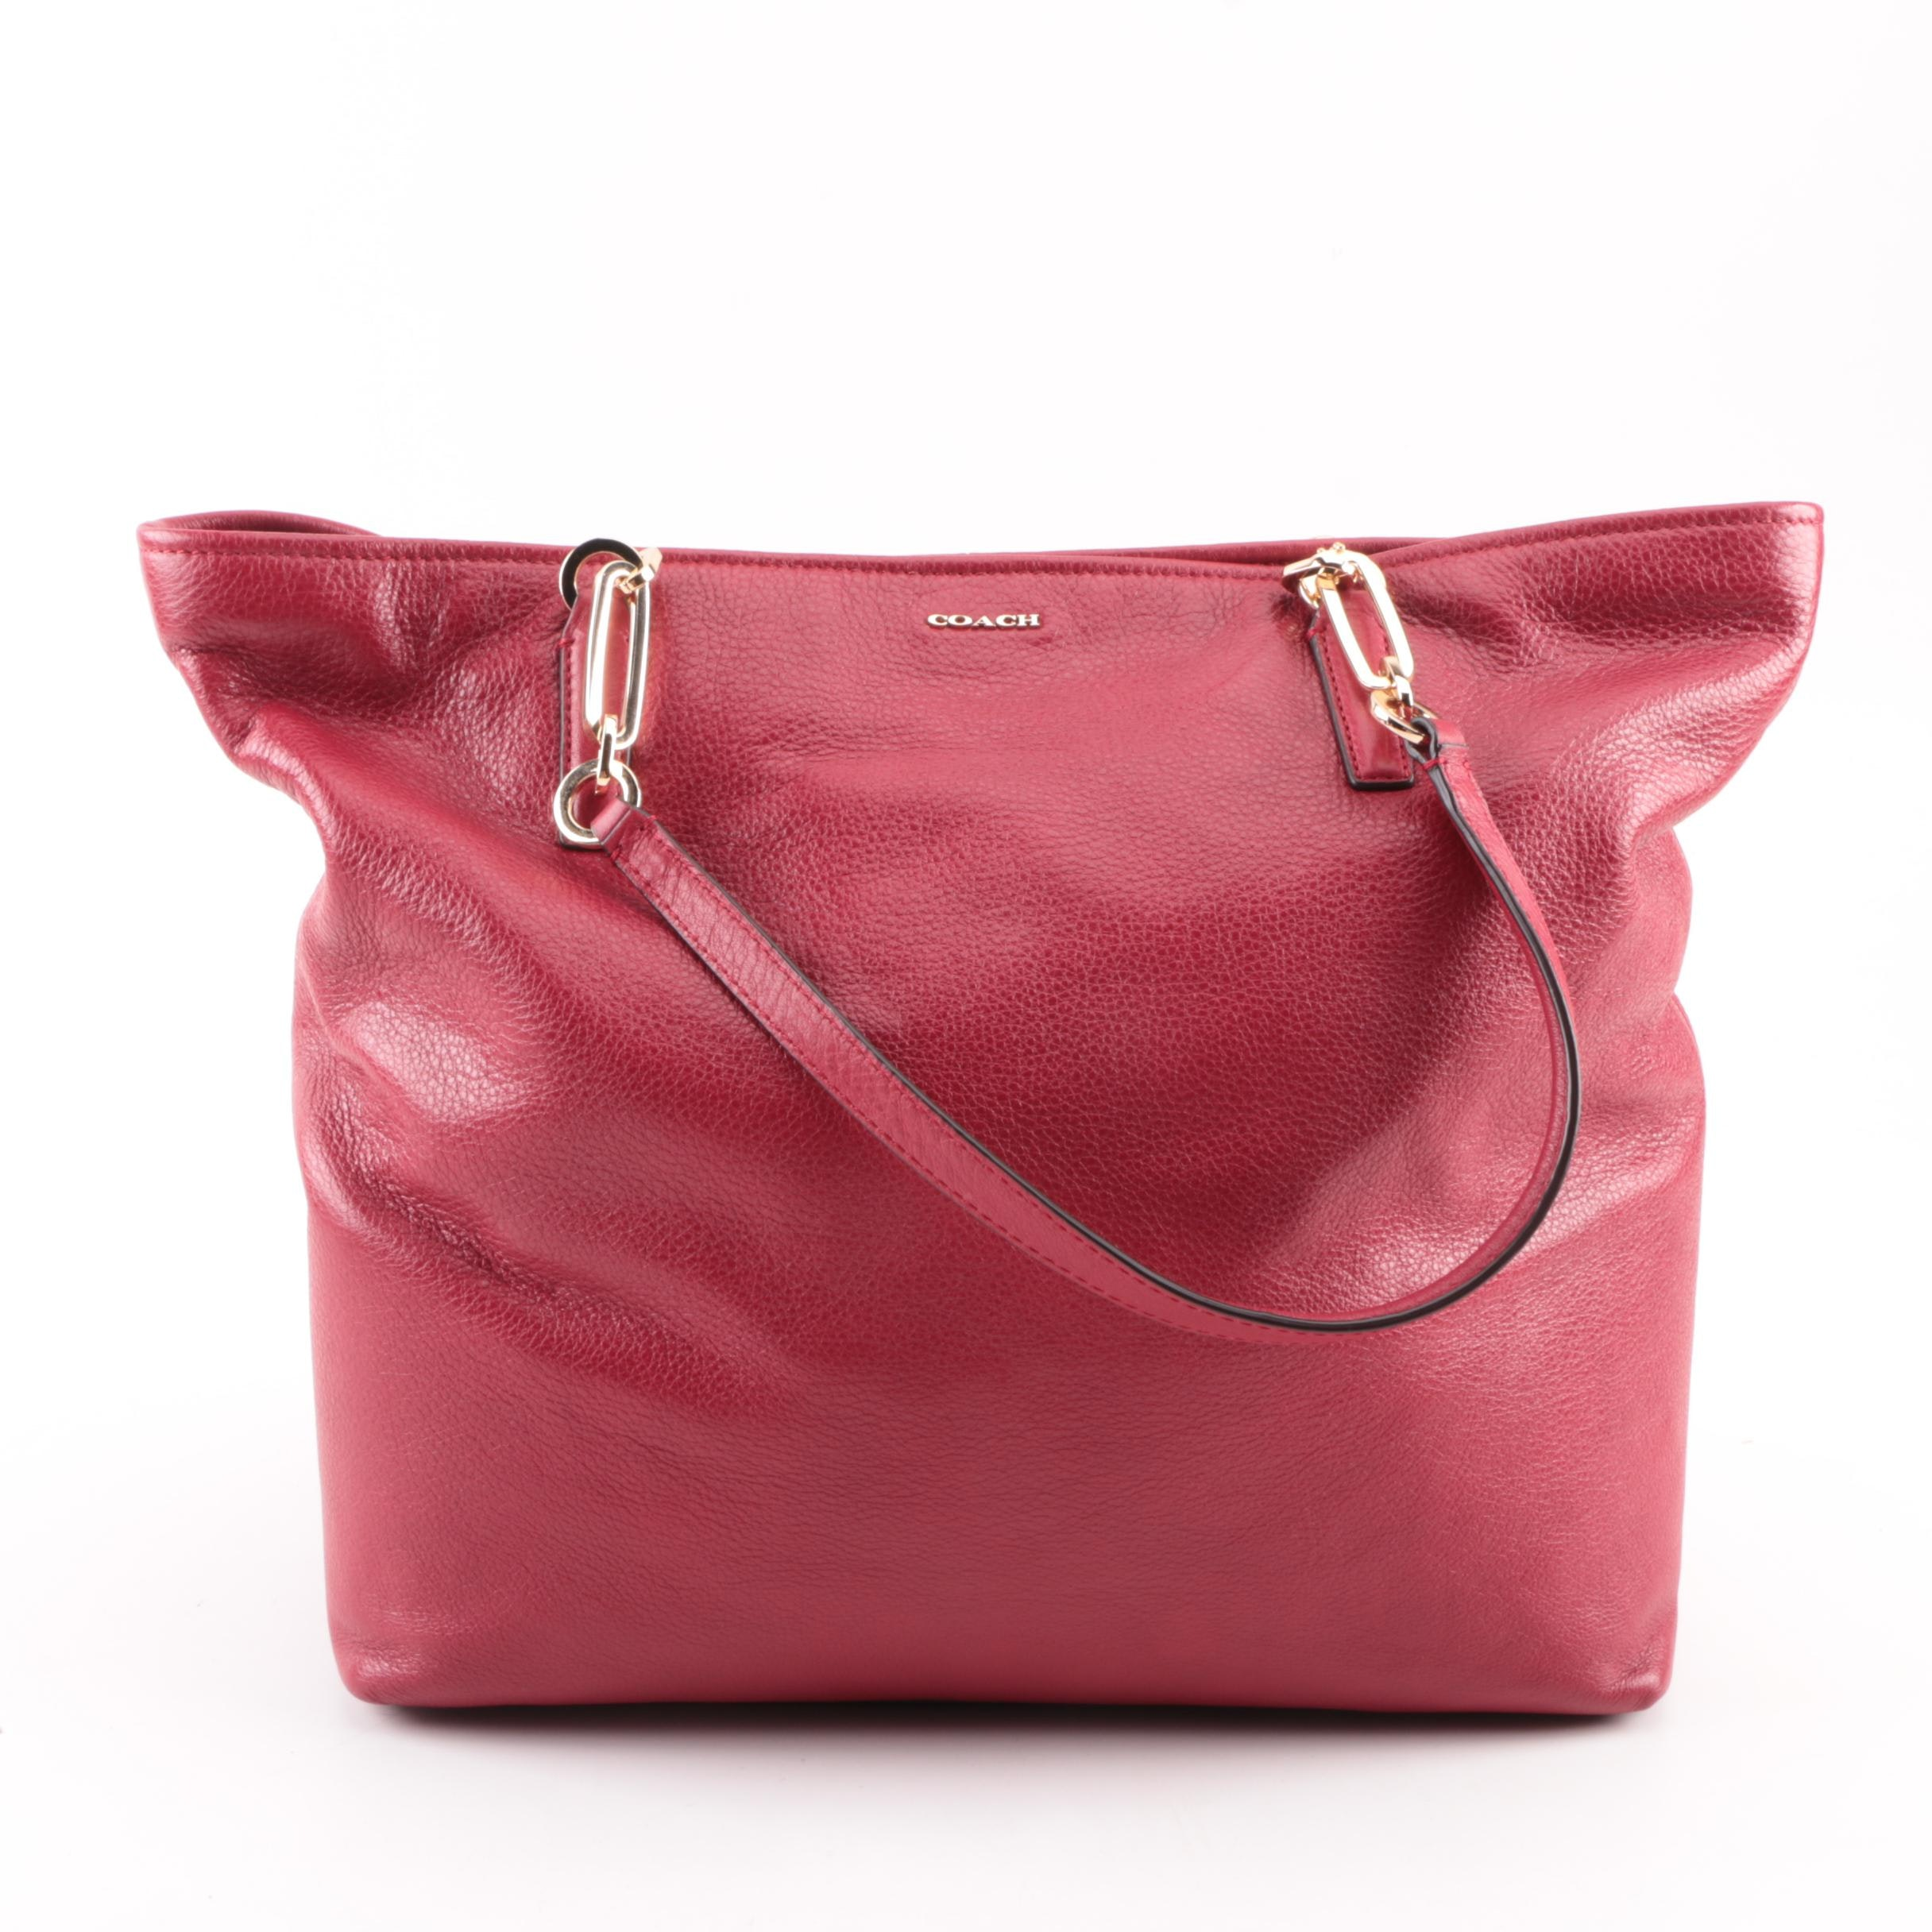 Coach Madison Red Leather North/South Tote Bag